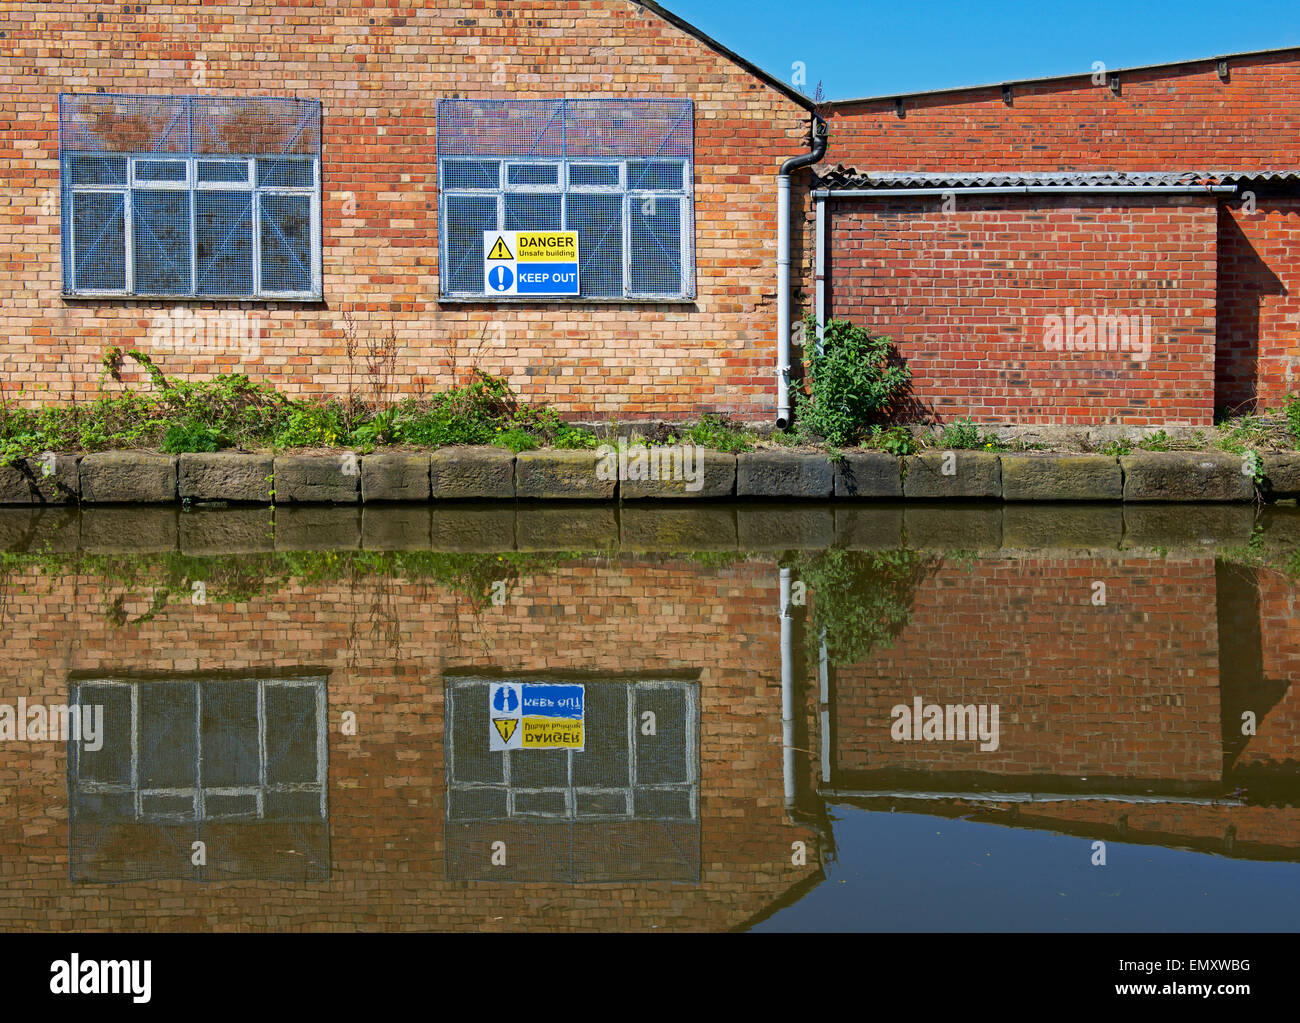 Sign warning Danger, Unsafe Building, Macclesfield Canal in Macclesfield, Cheshire, England UK - Stock Image